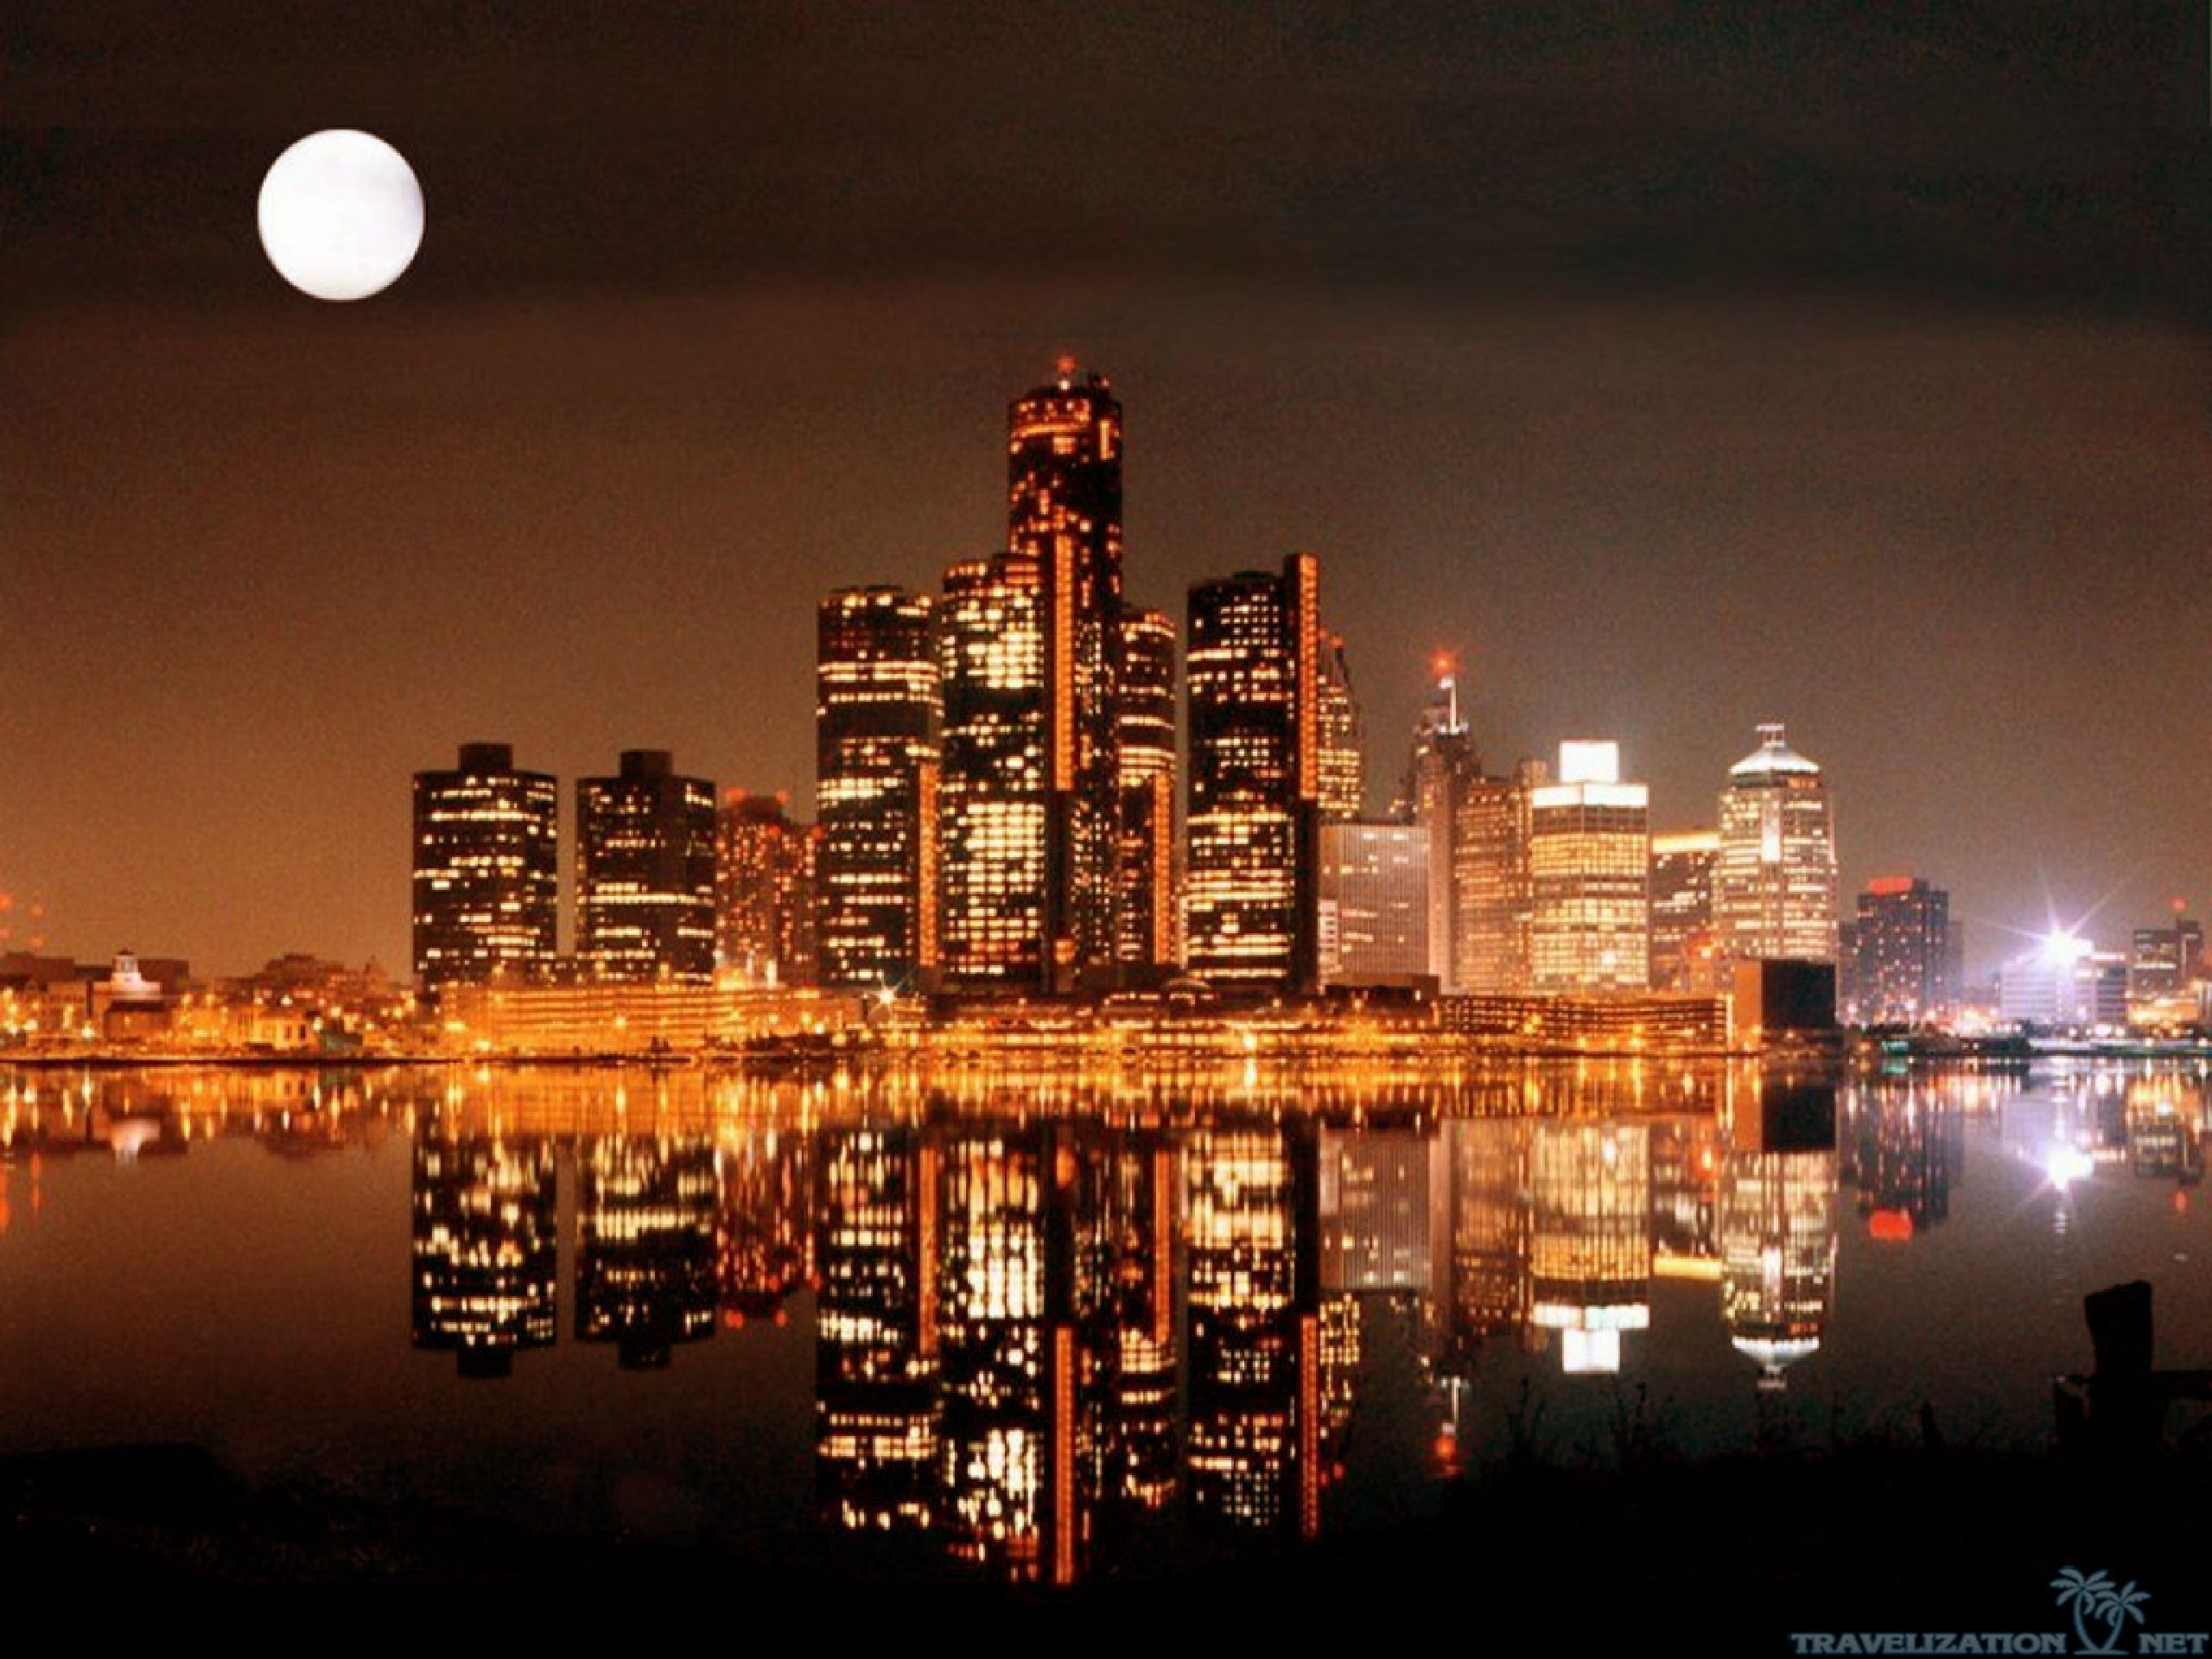 Res: 2560x1920, 1_detroit-cities-at-night-wallpapers-.jpg